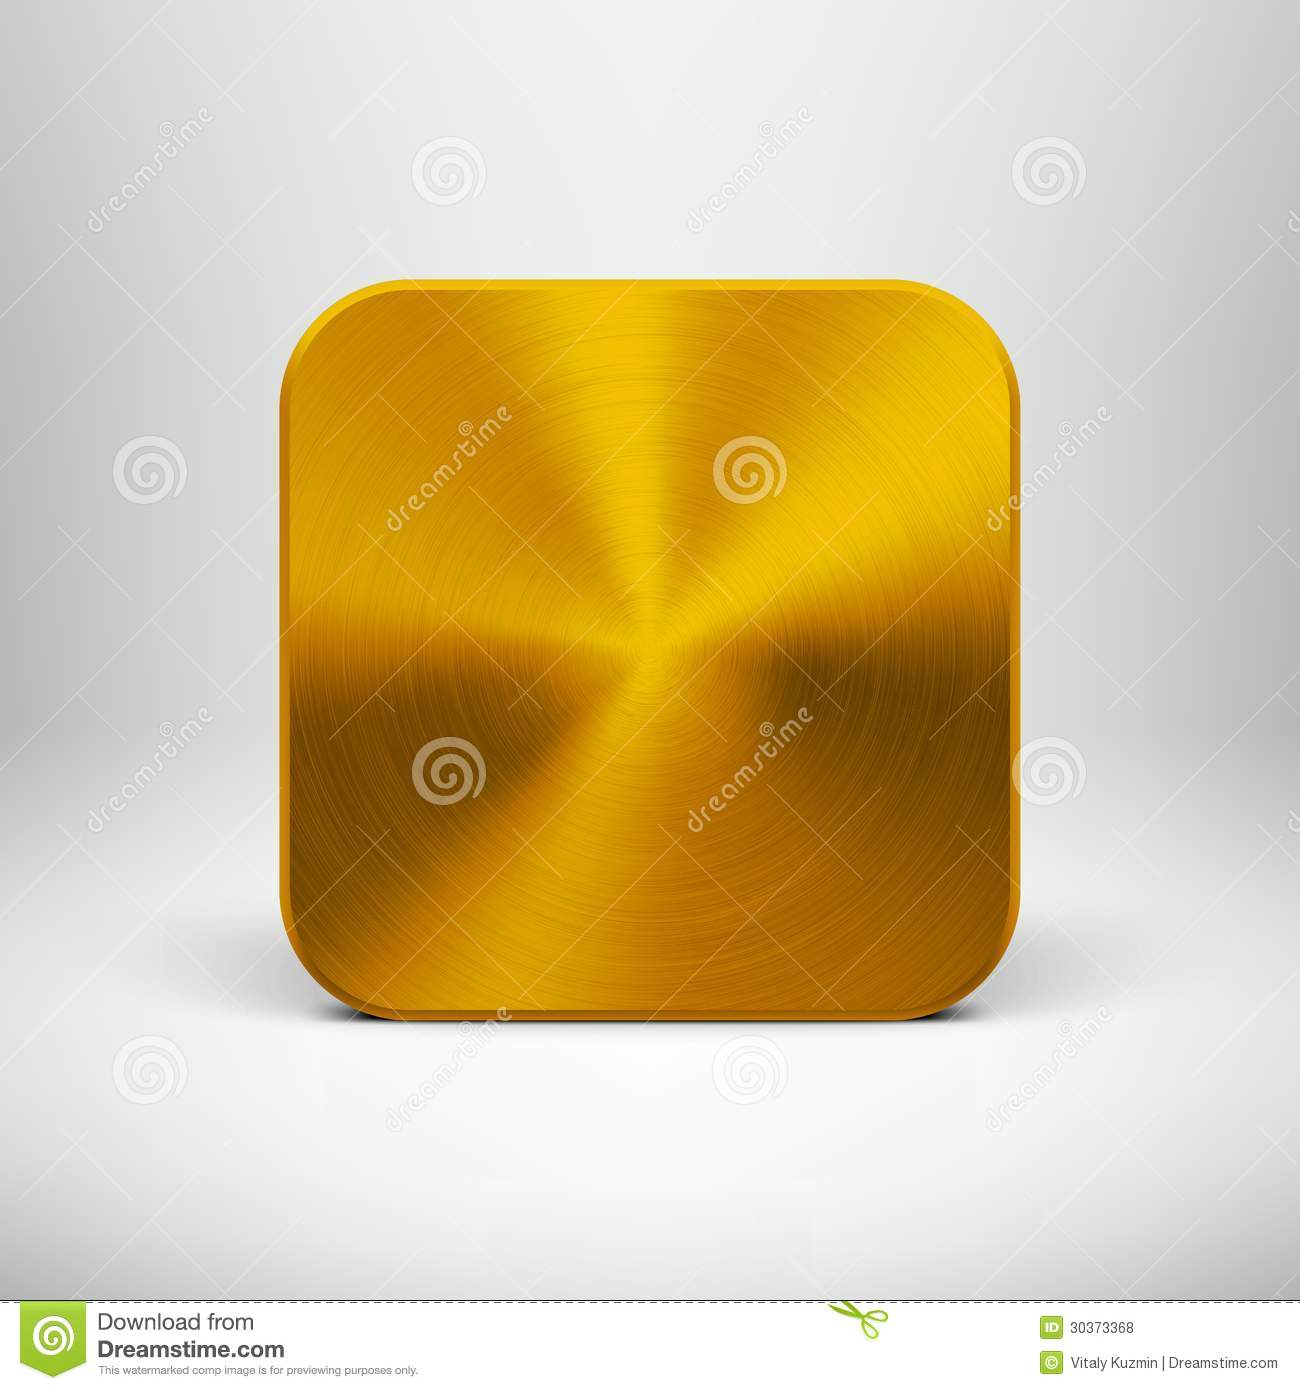 Technology App Icon With Gold Metal Texture Stock Vector